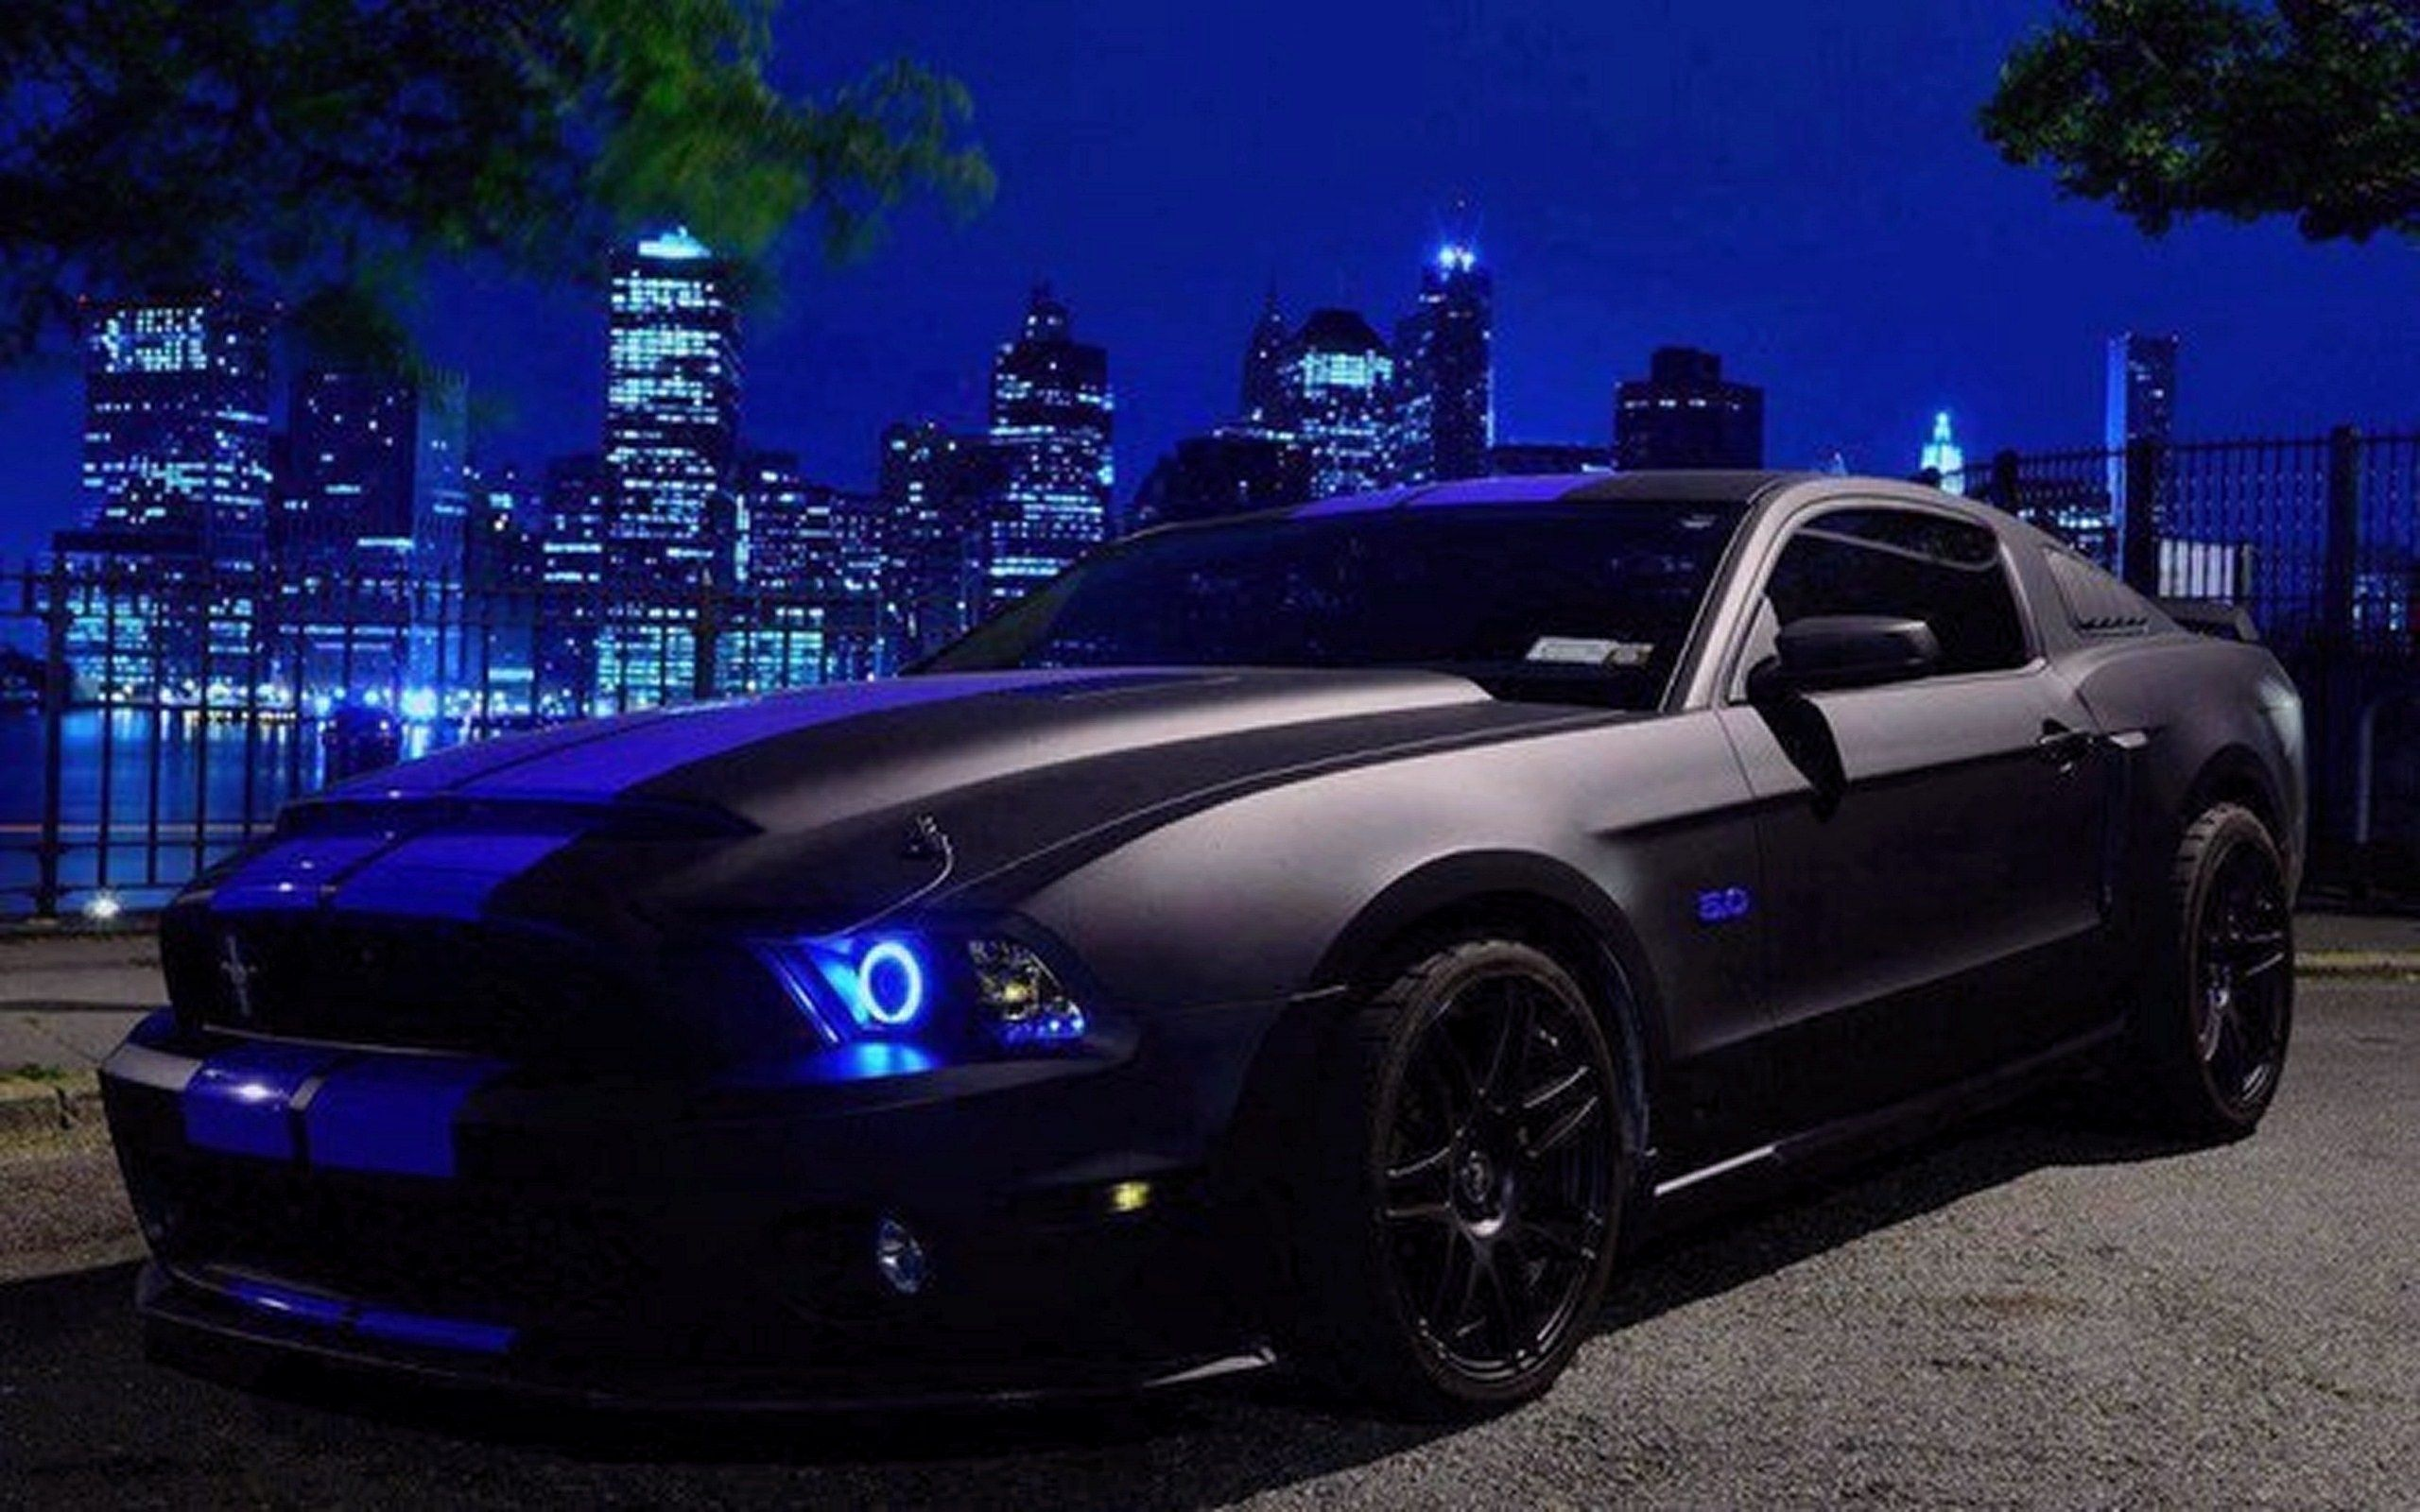 Black Ford Mustang Wallpaper High Definition